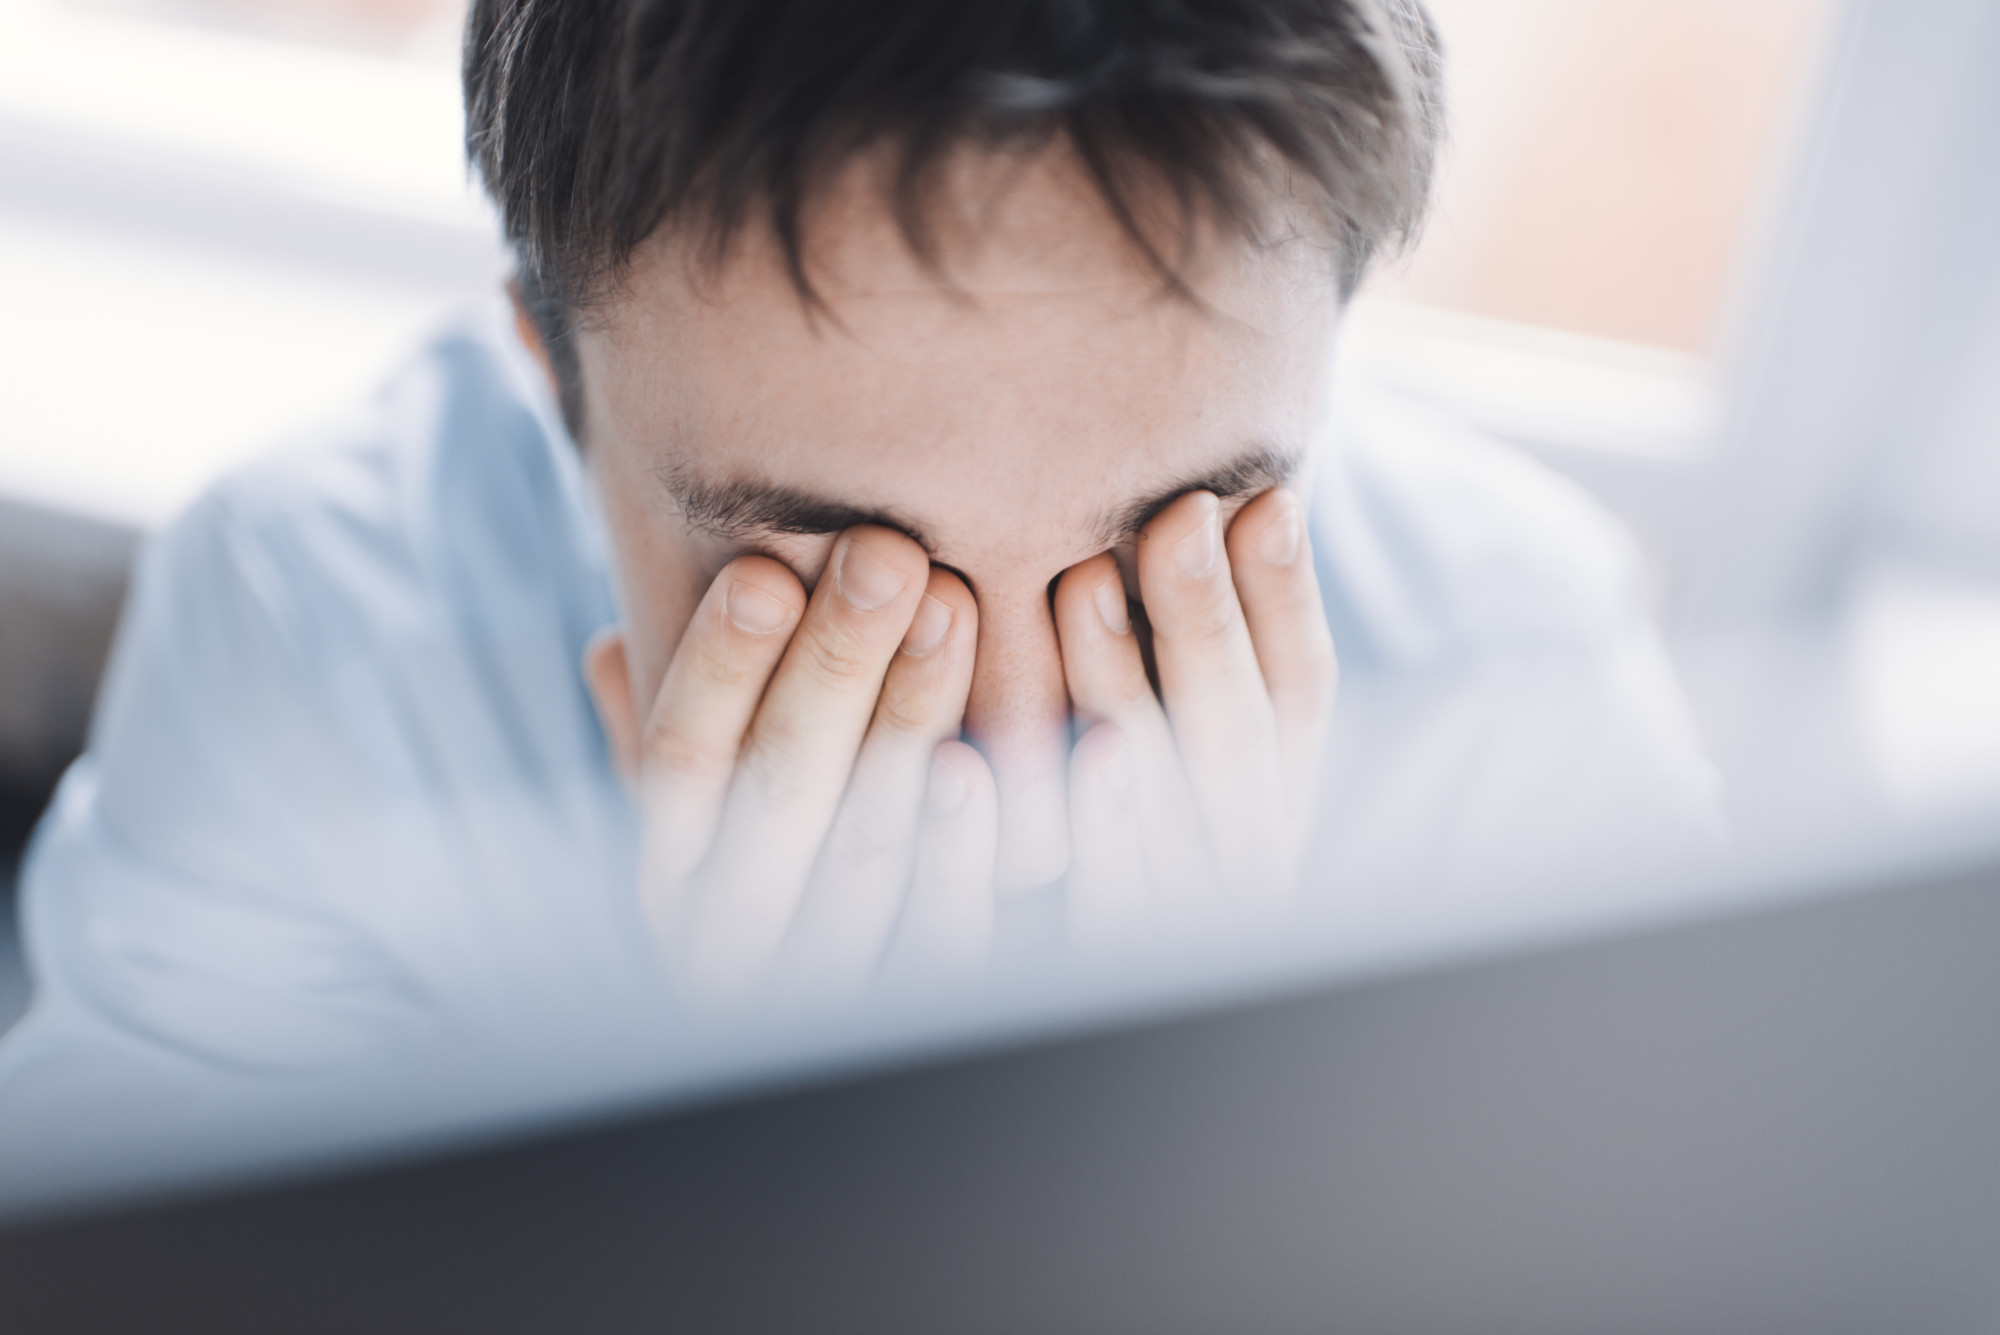 More Than Tired: How to Fight Fatigue and Get Your Life Back